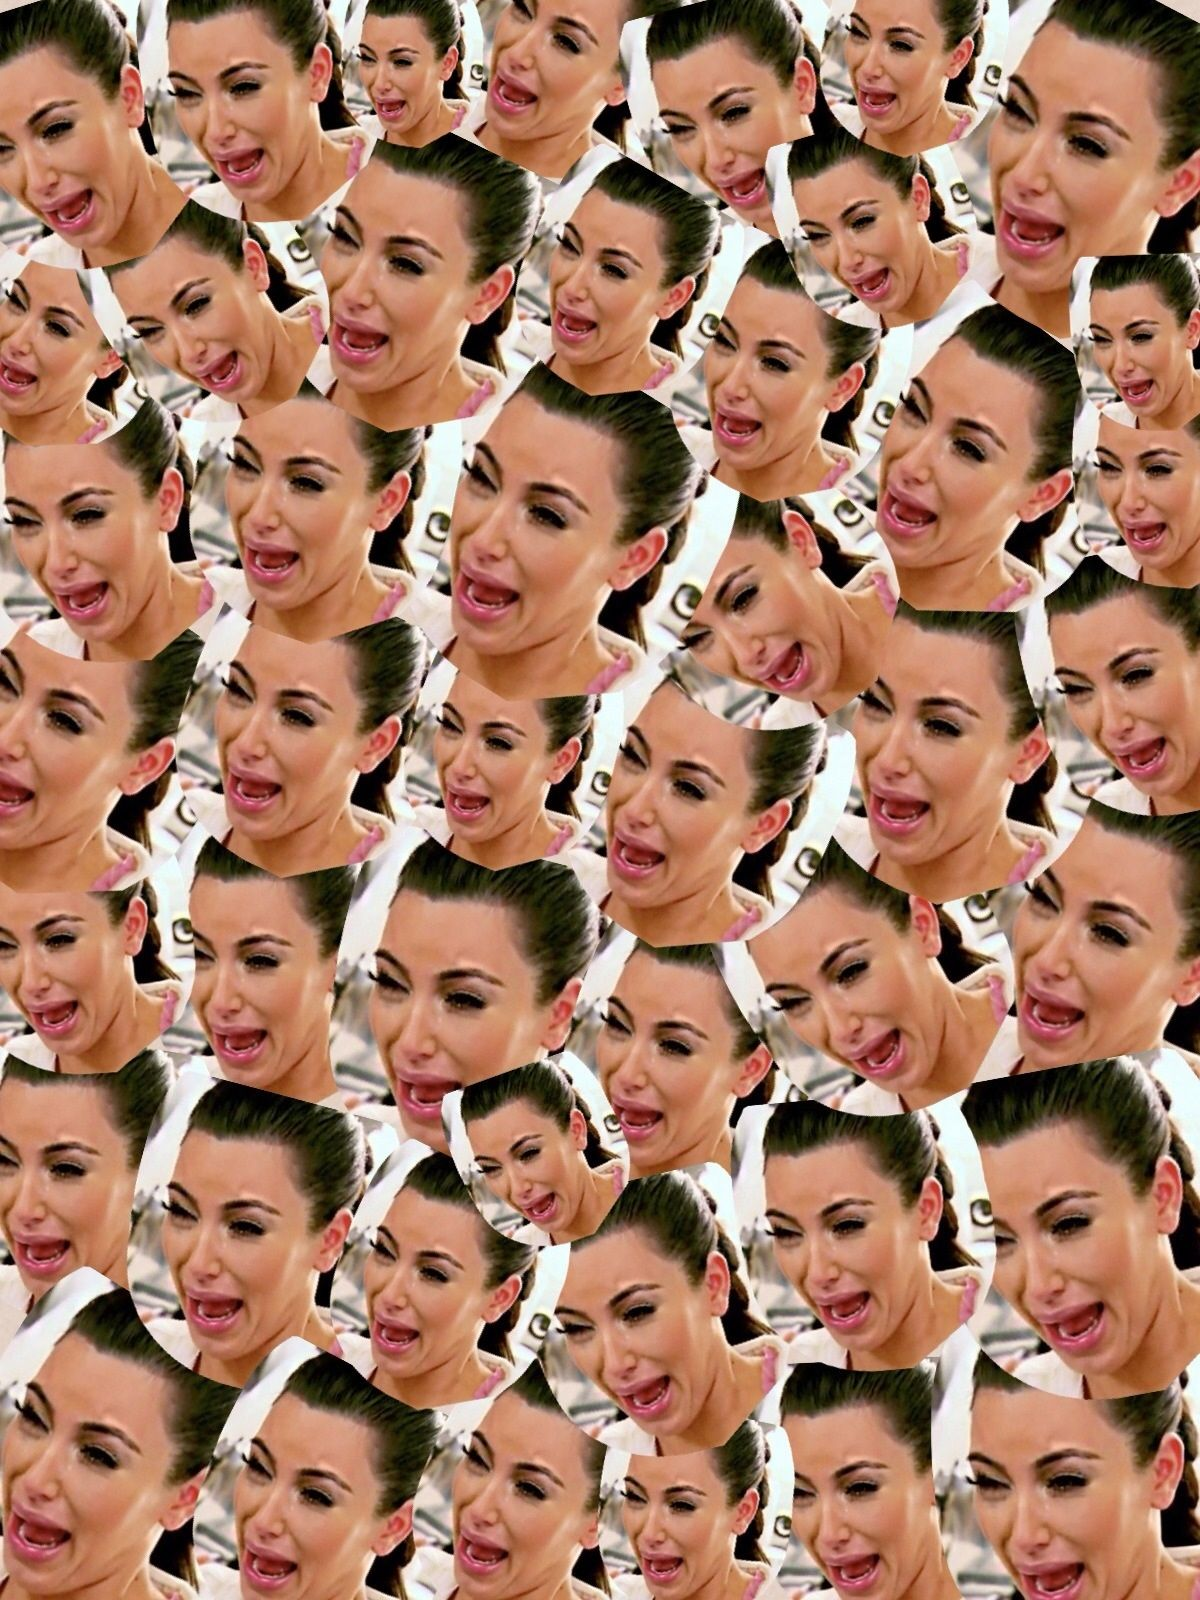 Finals Week As Told By Kim Kardashian S Crying Face Kim K Crying Face Kim Kardashian Cry Crying Face